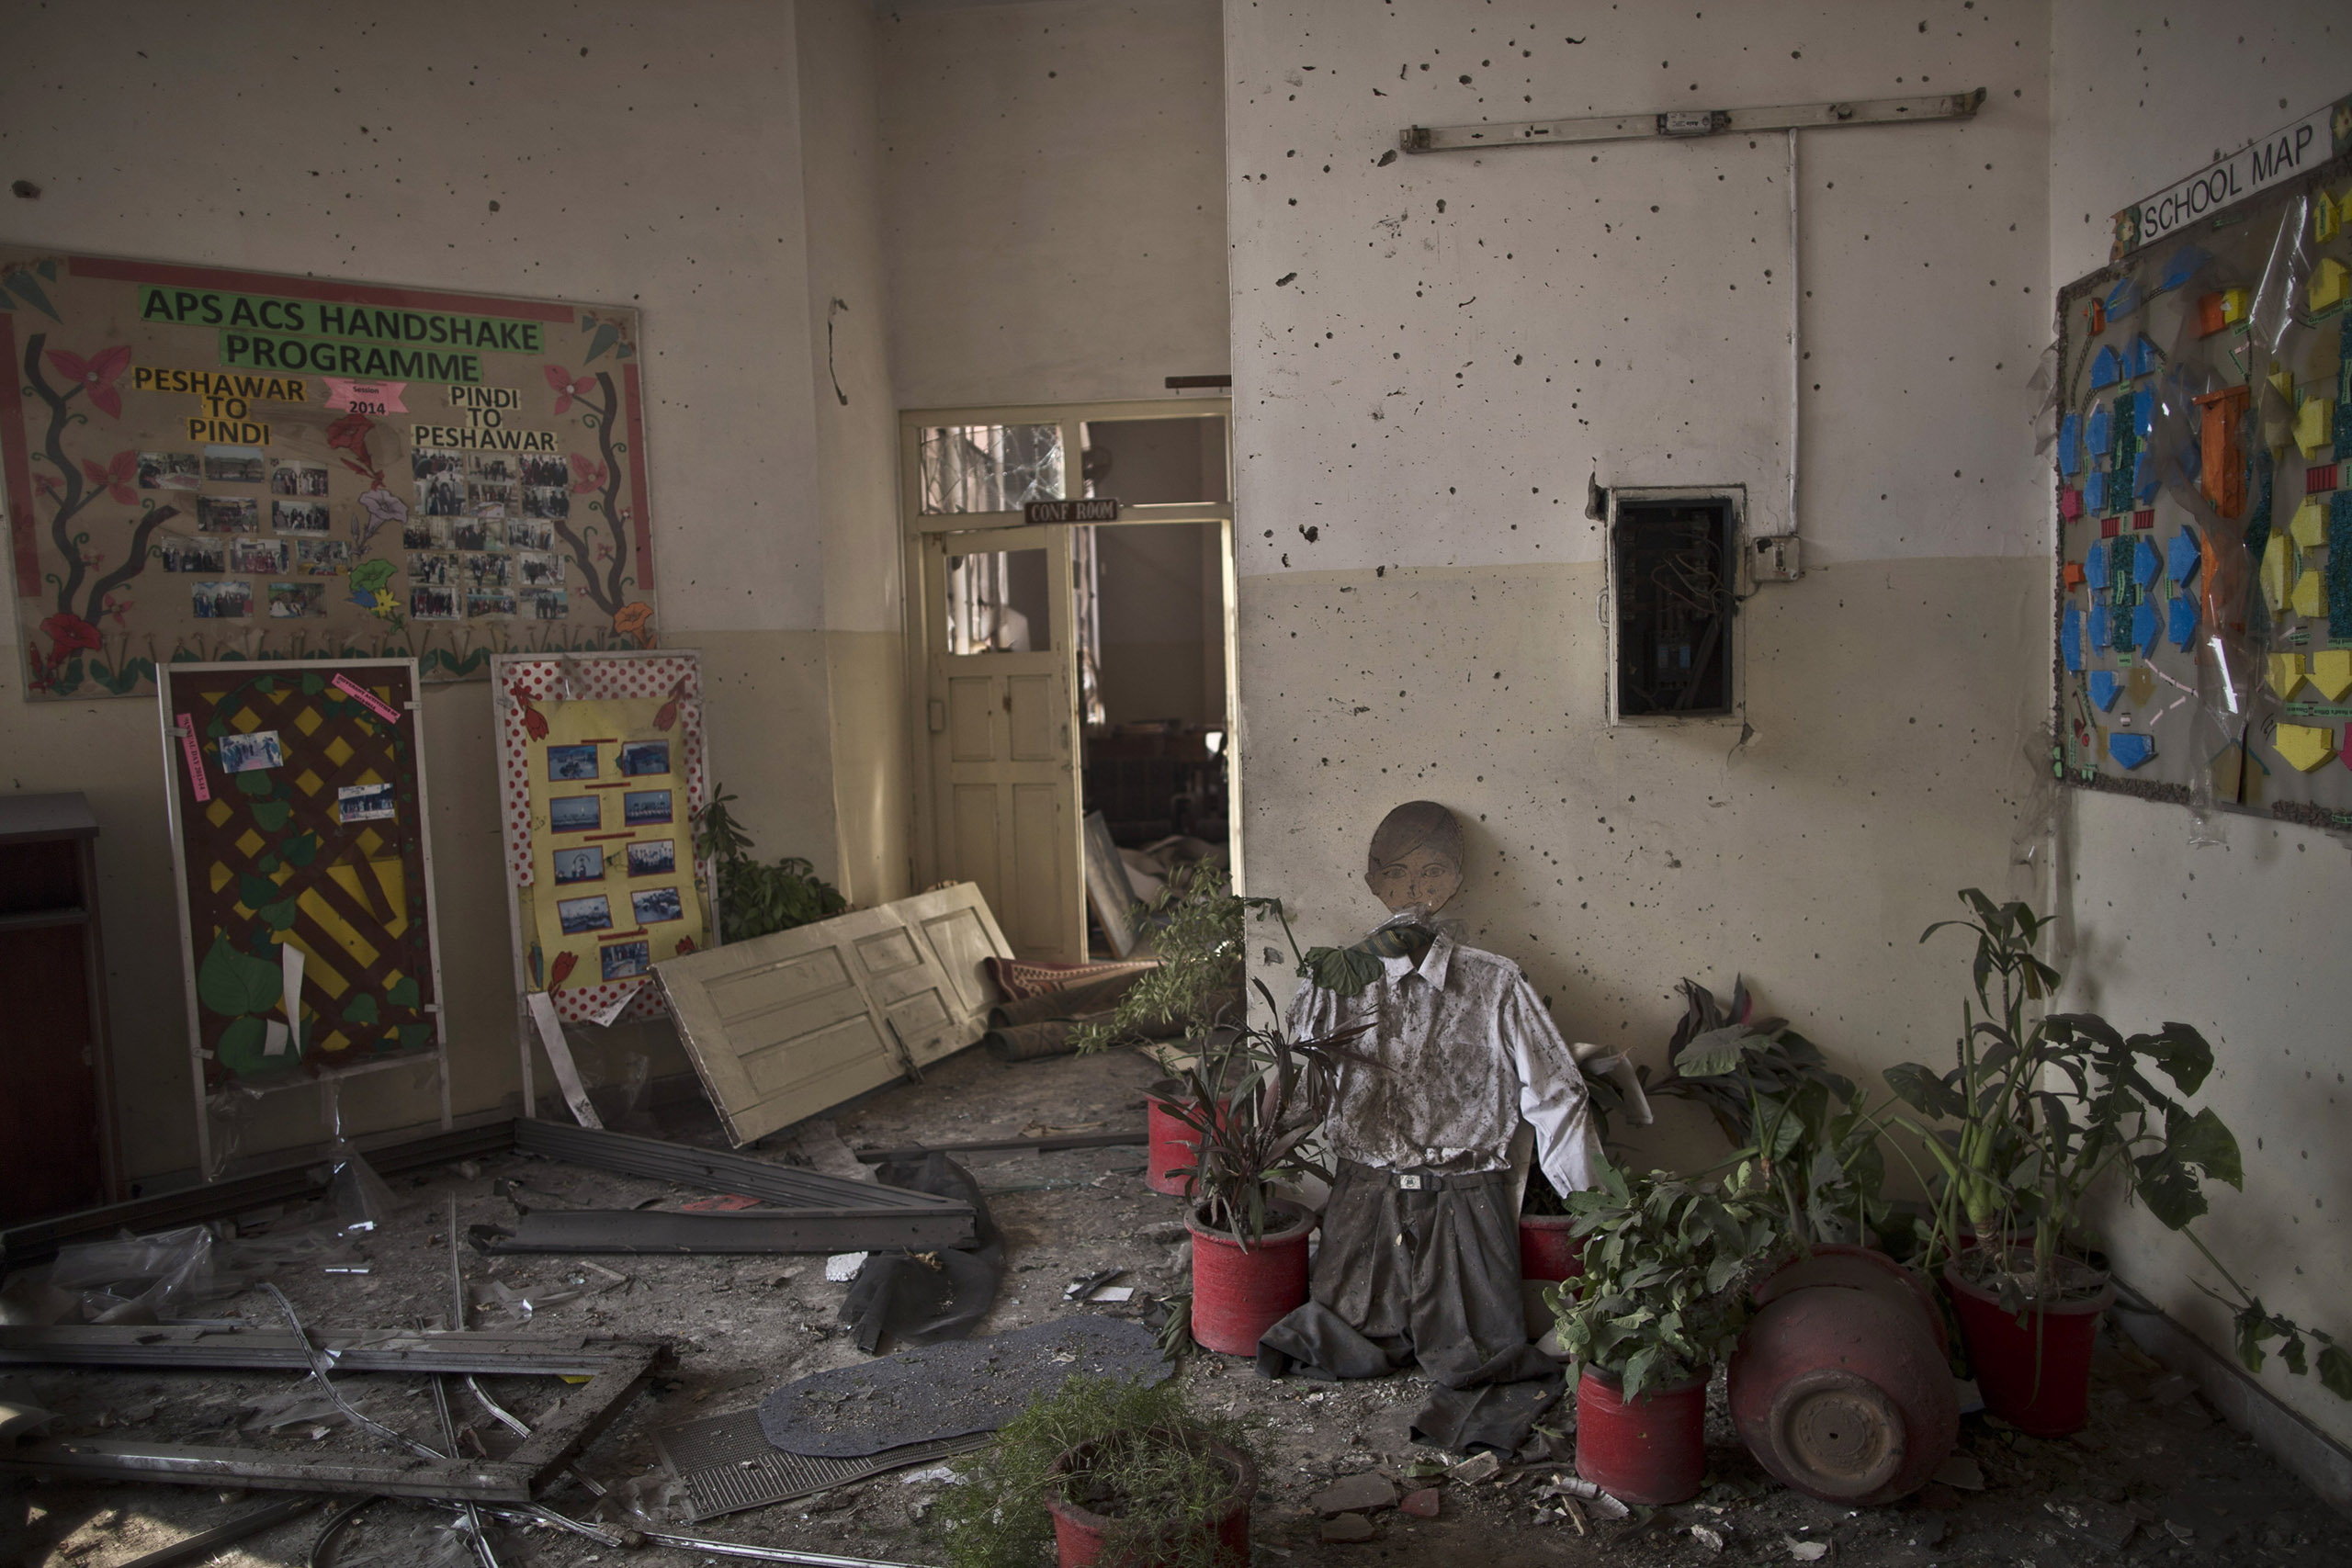 A damaged room inside the Army Public School, which was attacked on Dec. 16 by the Pakistani Taliban. Peshawar, Pakistan. Dec. 18, 2014.